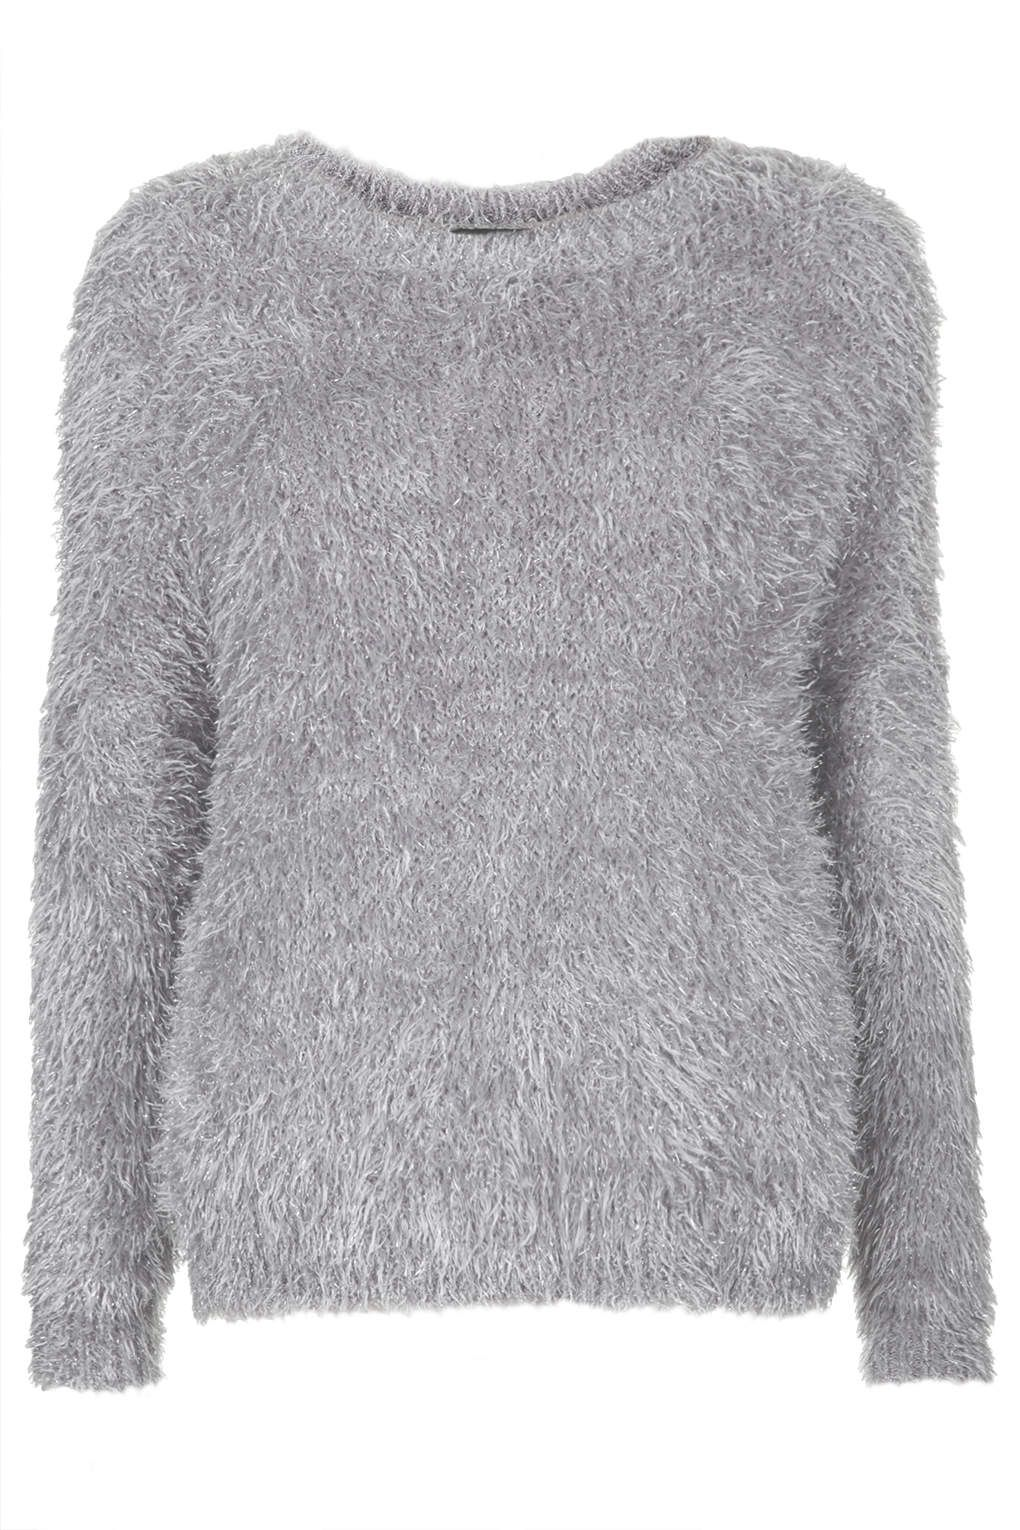 Silver metallic fluffy knit | NIGHTSPOT | Pinterest | Jumper ...